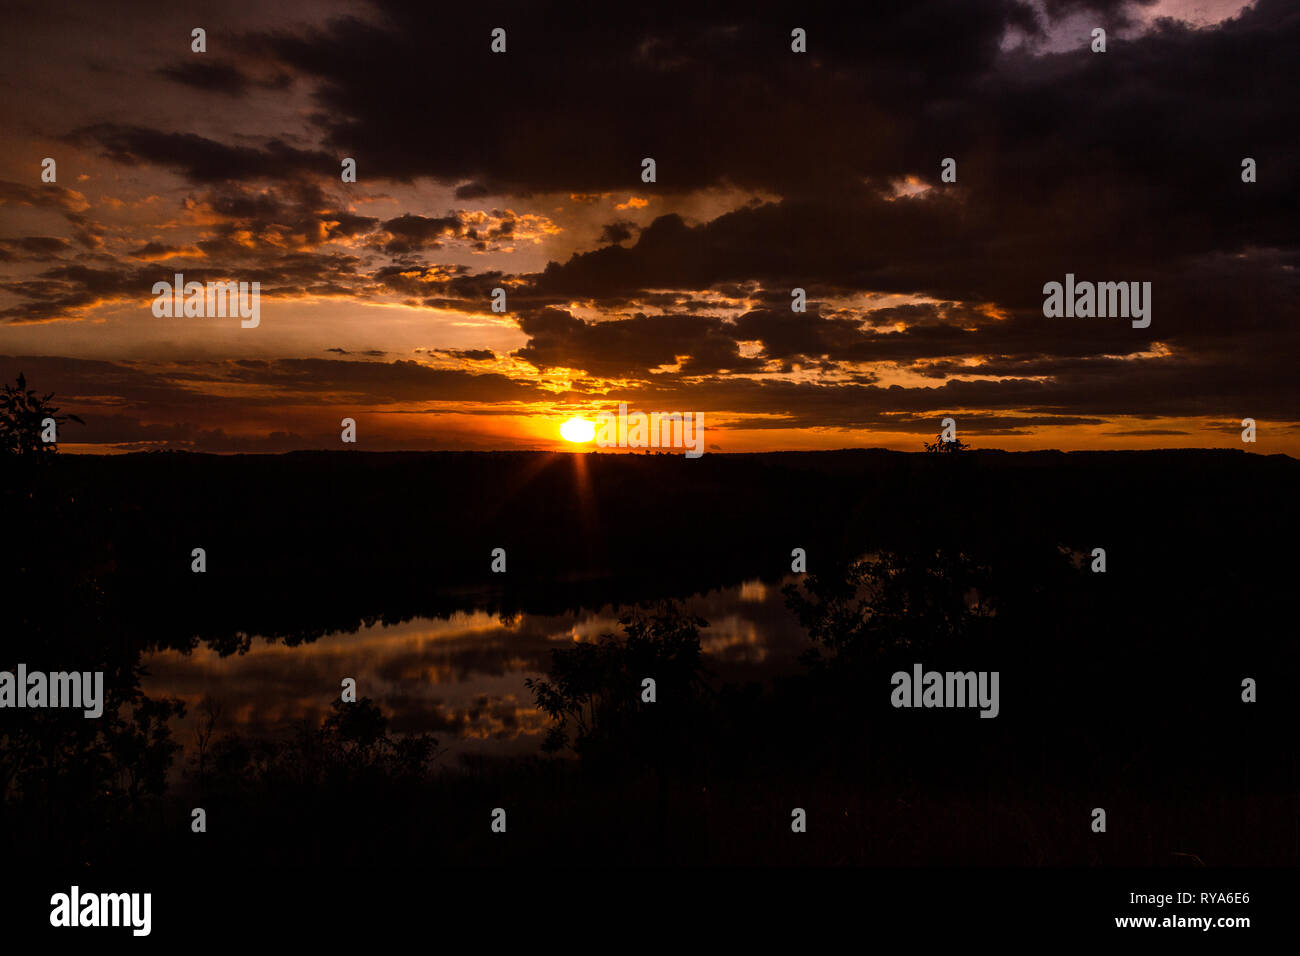 shot of a beautiful sunset in the australian outback with 1 lakes, Nitmiluk National Park, Australia - Stock Image